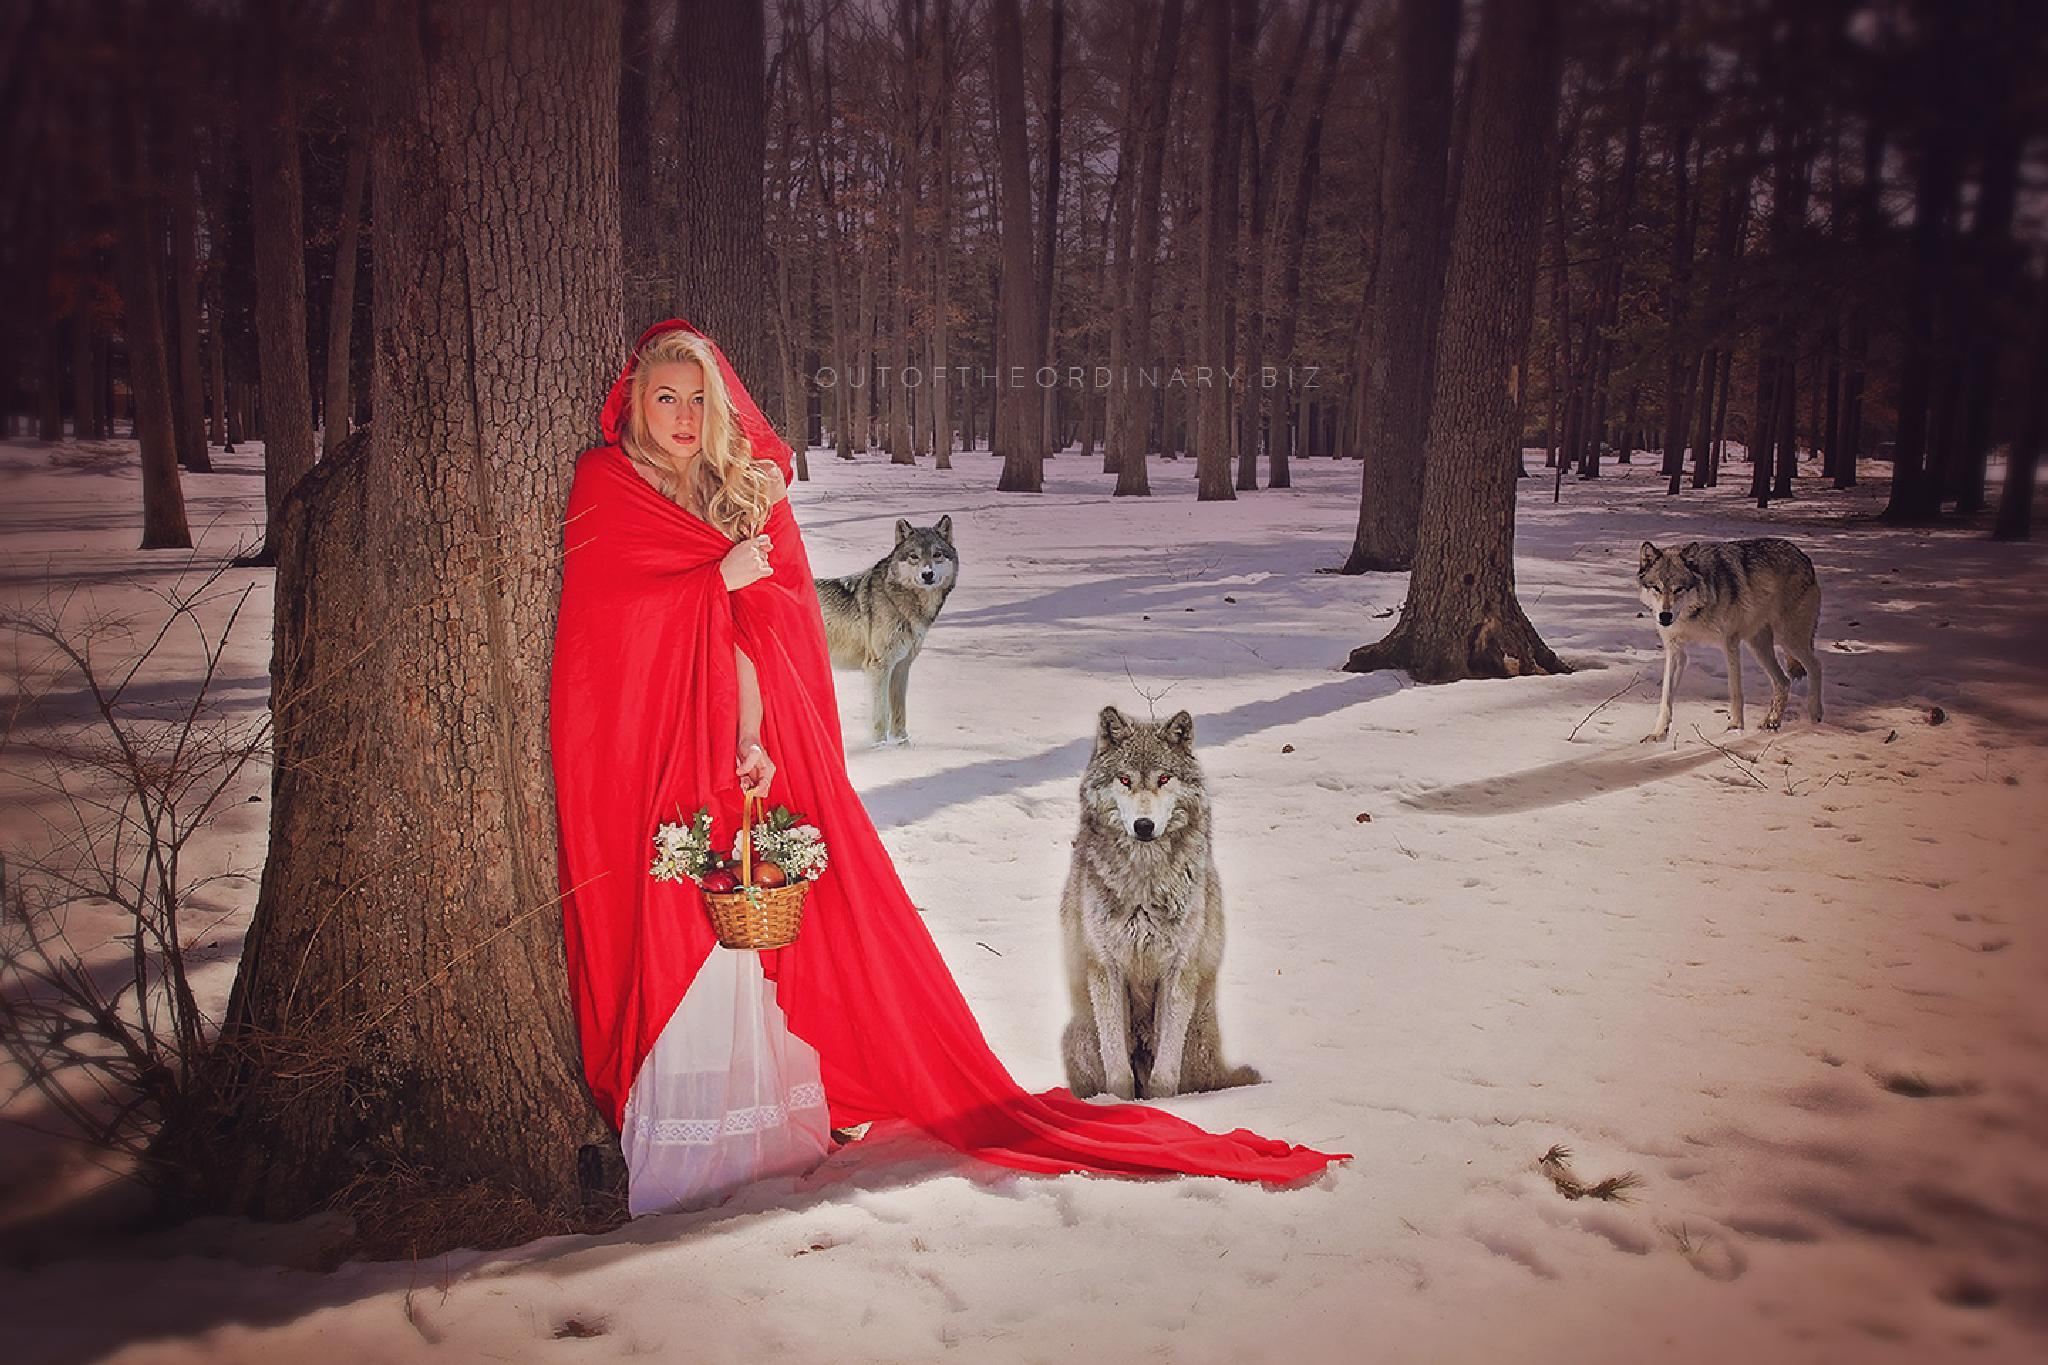 Little Red Riding Hood by Holly Schreckengost Greene